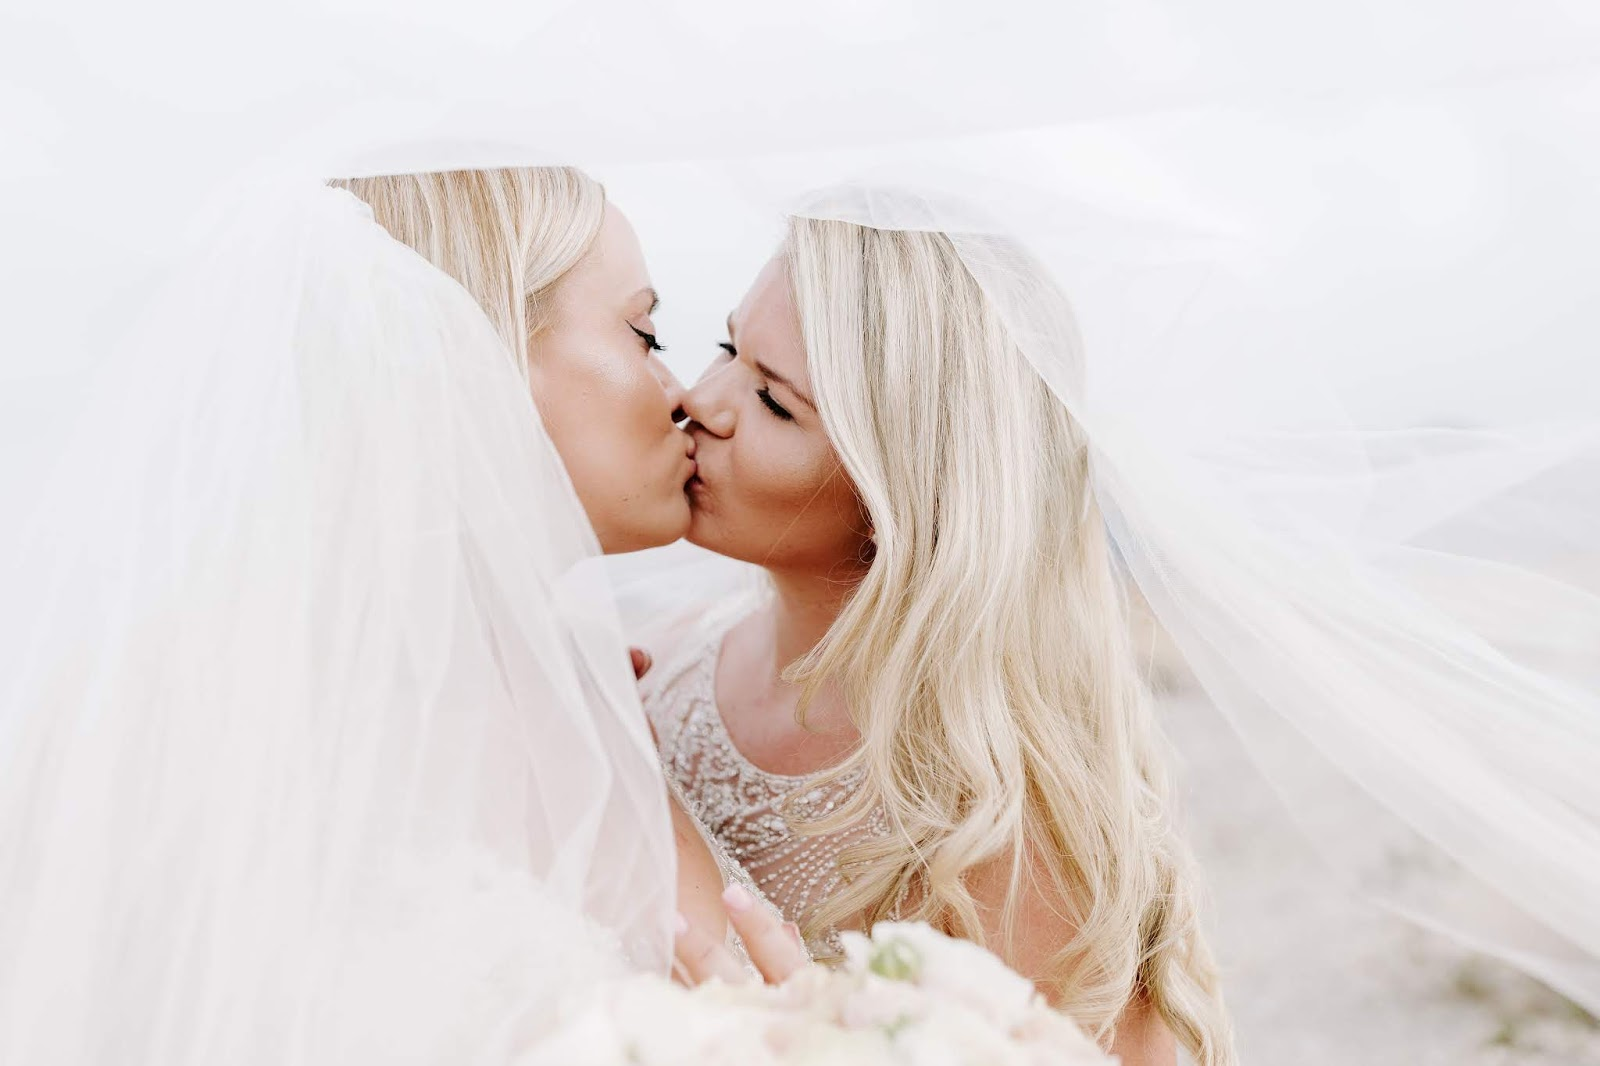 Whitney and Megan kiss as brides with a veil